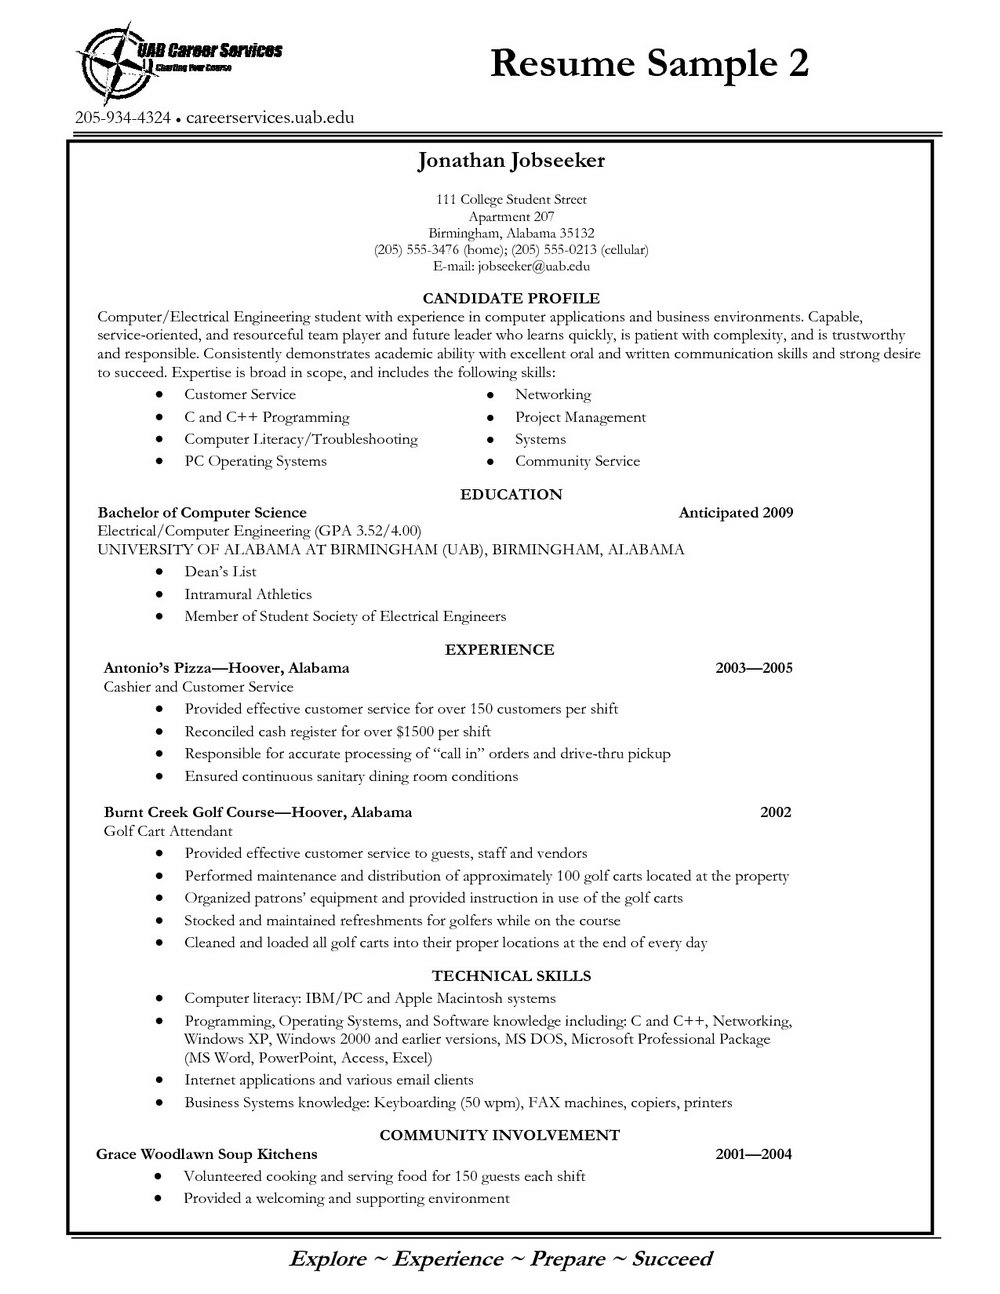 Resume Template For College Applications Free